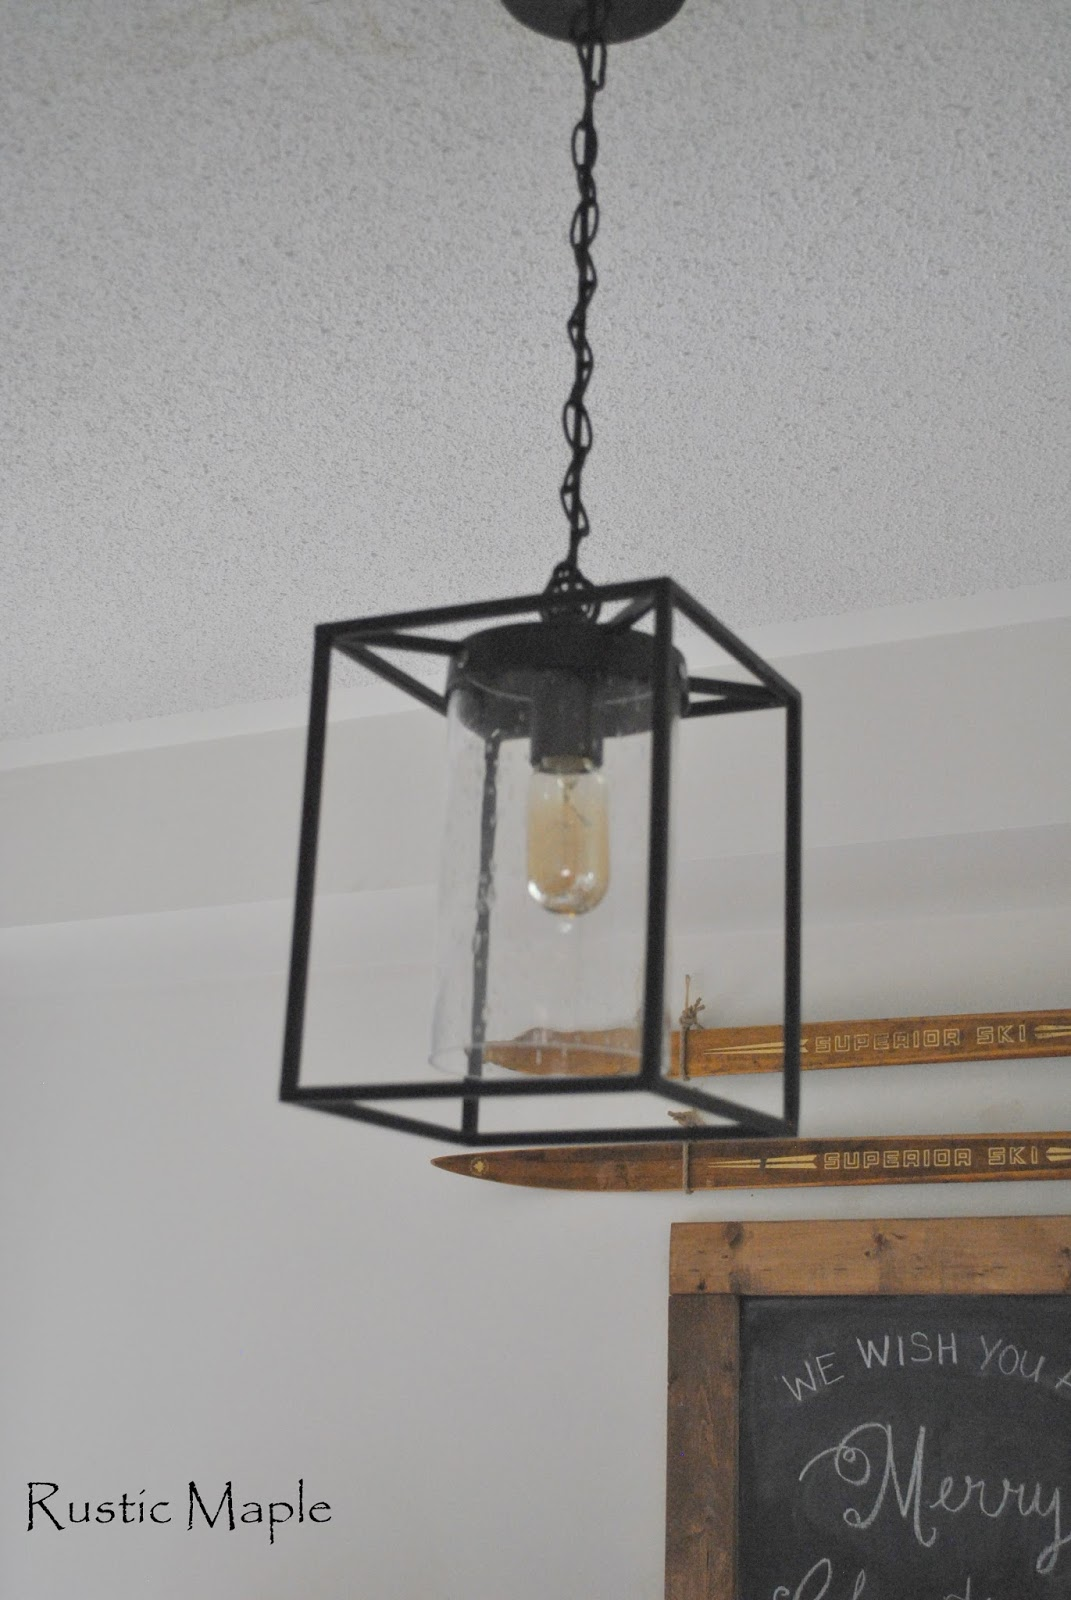 Rustic maple new retro industrial pendant light new retro industrial pendant light arubaitofo Image collections